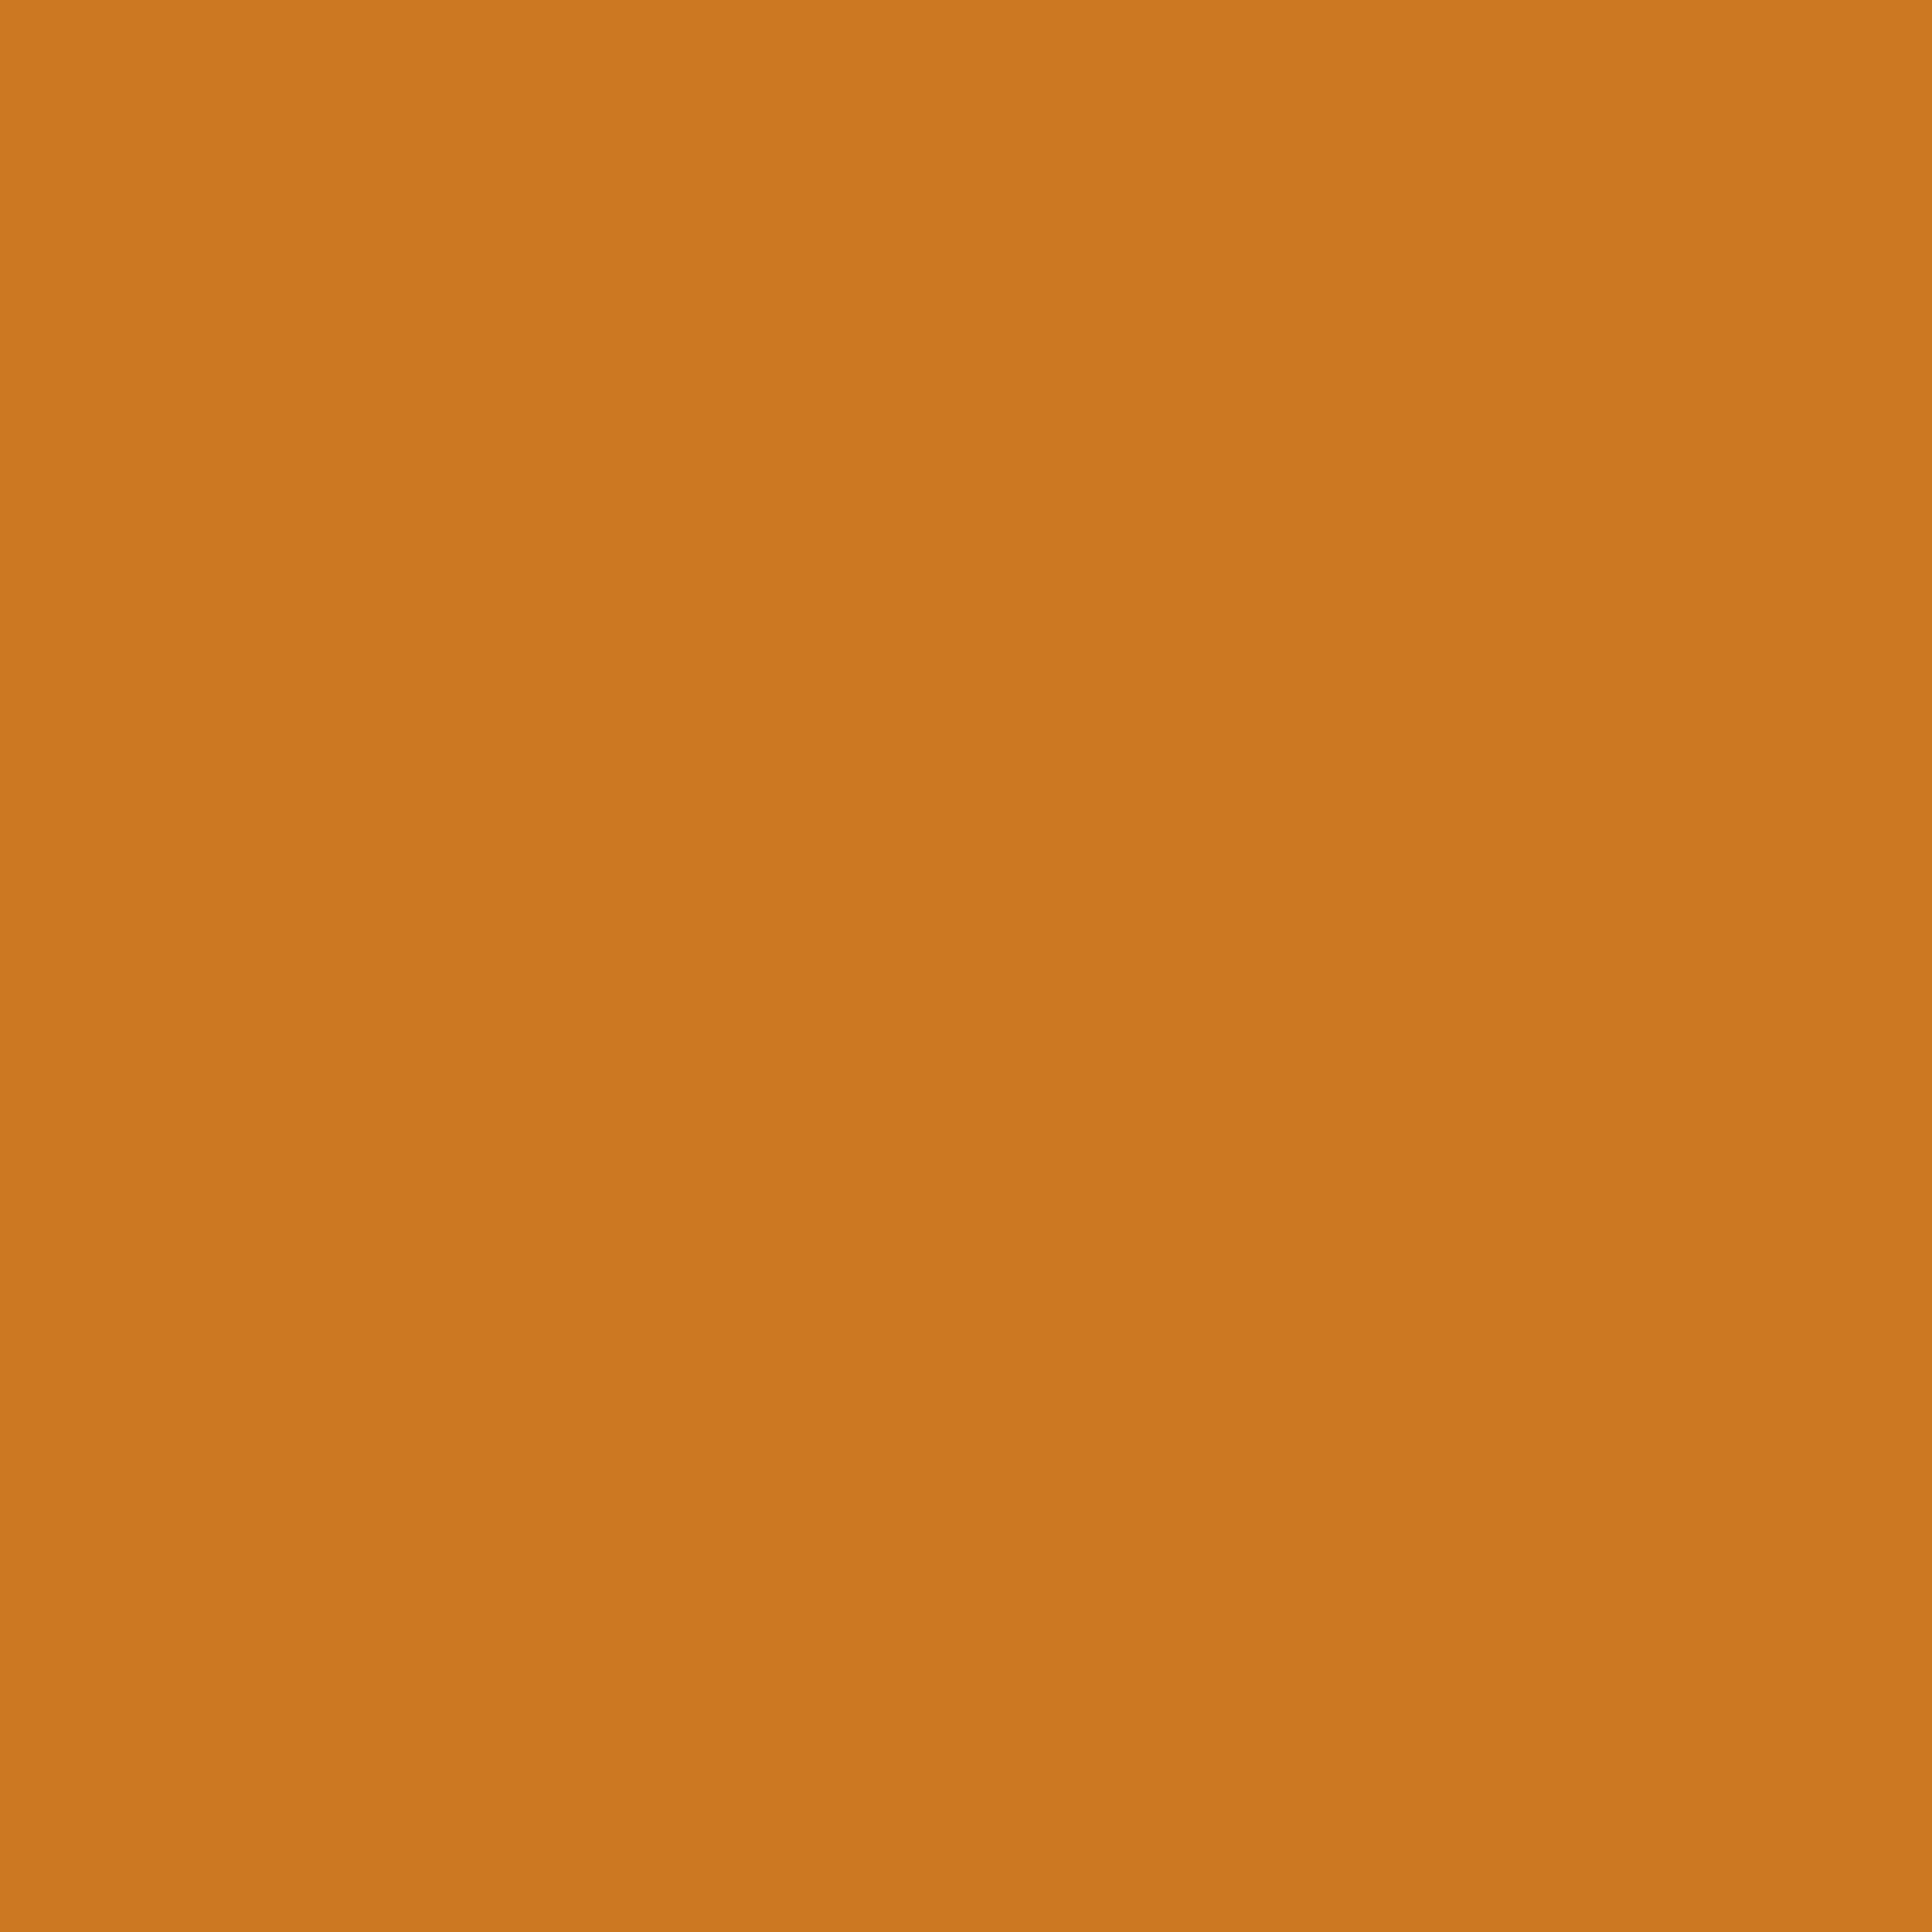 2048x2048 Ochre Solid Color Background